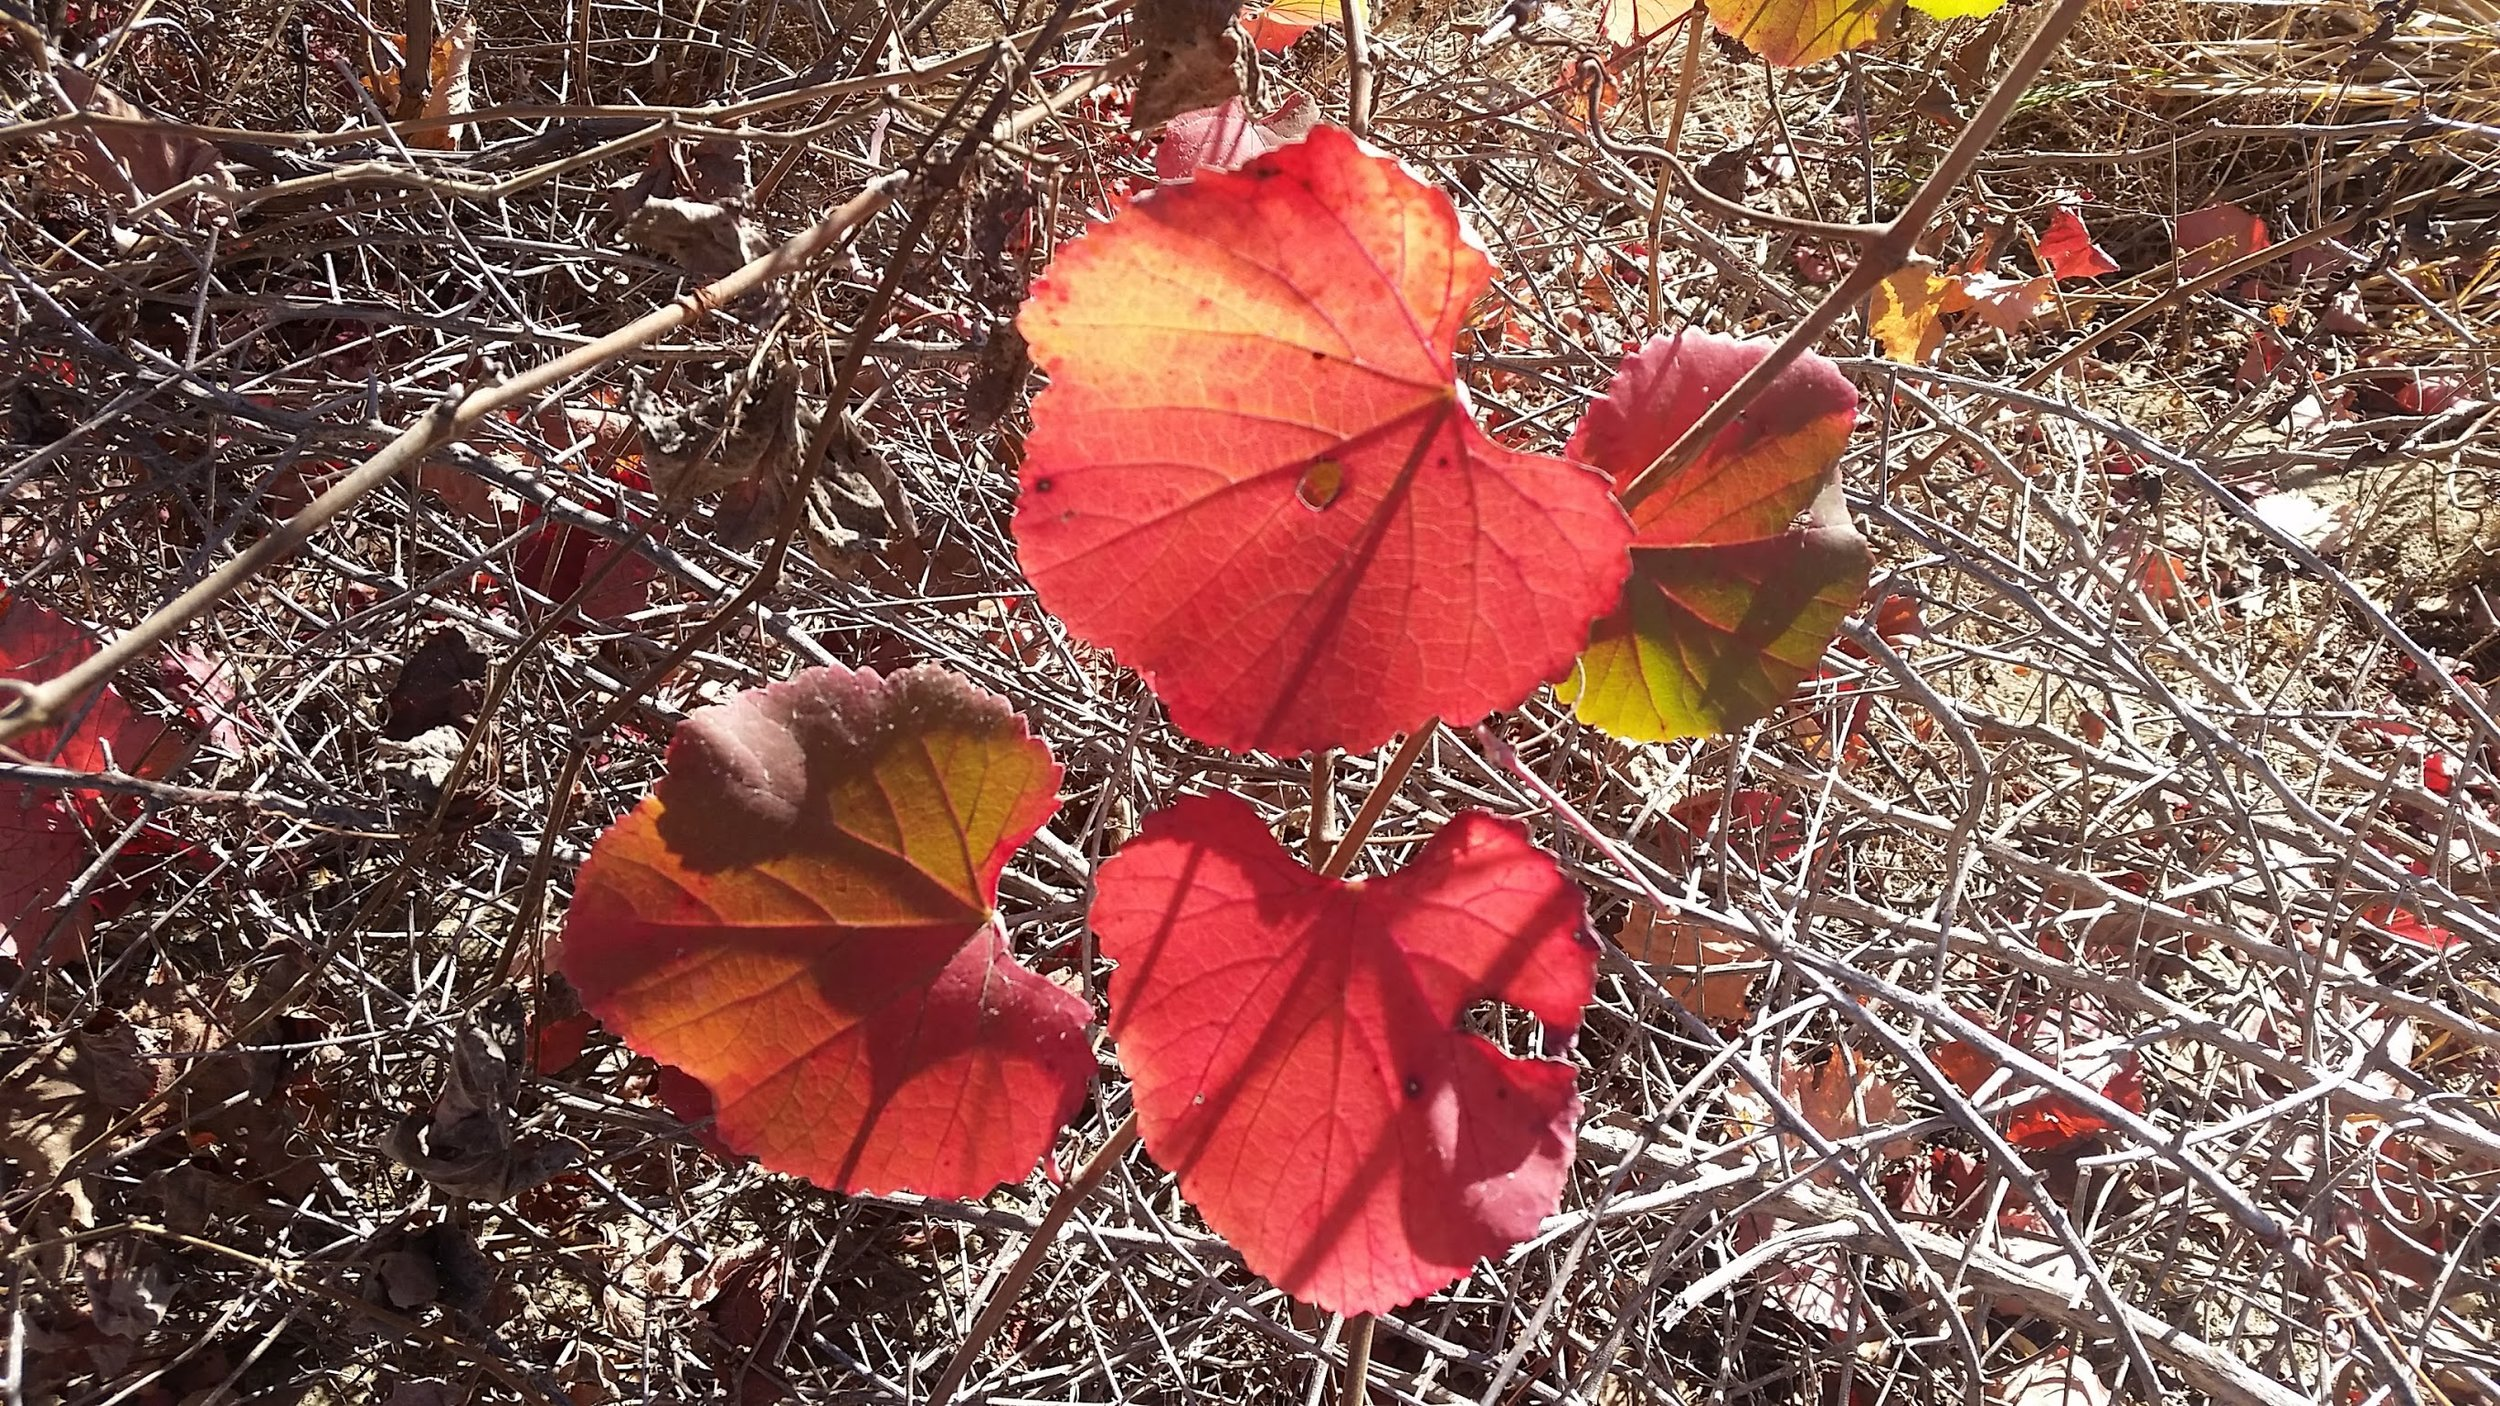 Heart shaped leaves I found while wandering around nature.